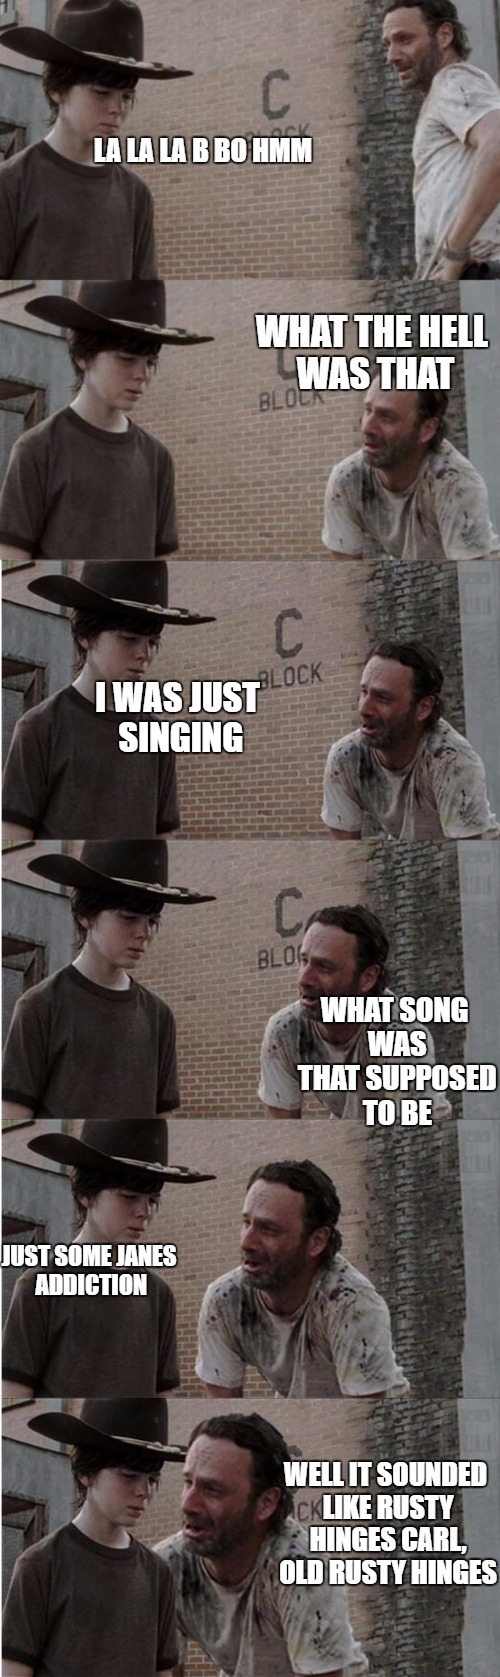 Singing sweet sun shine | LA LA LA B BO HMM JUST SOME JANES ADDICTION WHAT THE HELL WAS THAT I WAS JUST SINGING WHAT SONG WAS THAT SUPPOSED TO BE WELL IT SOUNDED LIKE | image tagged in memes,rick and carl longer,funny | made w/ Imgflip meme maker